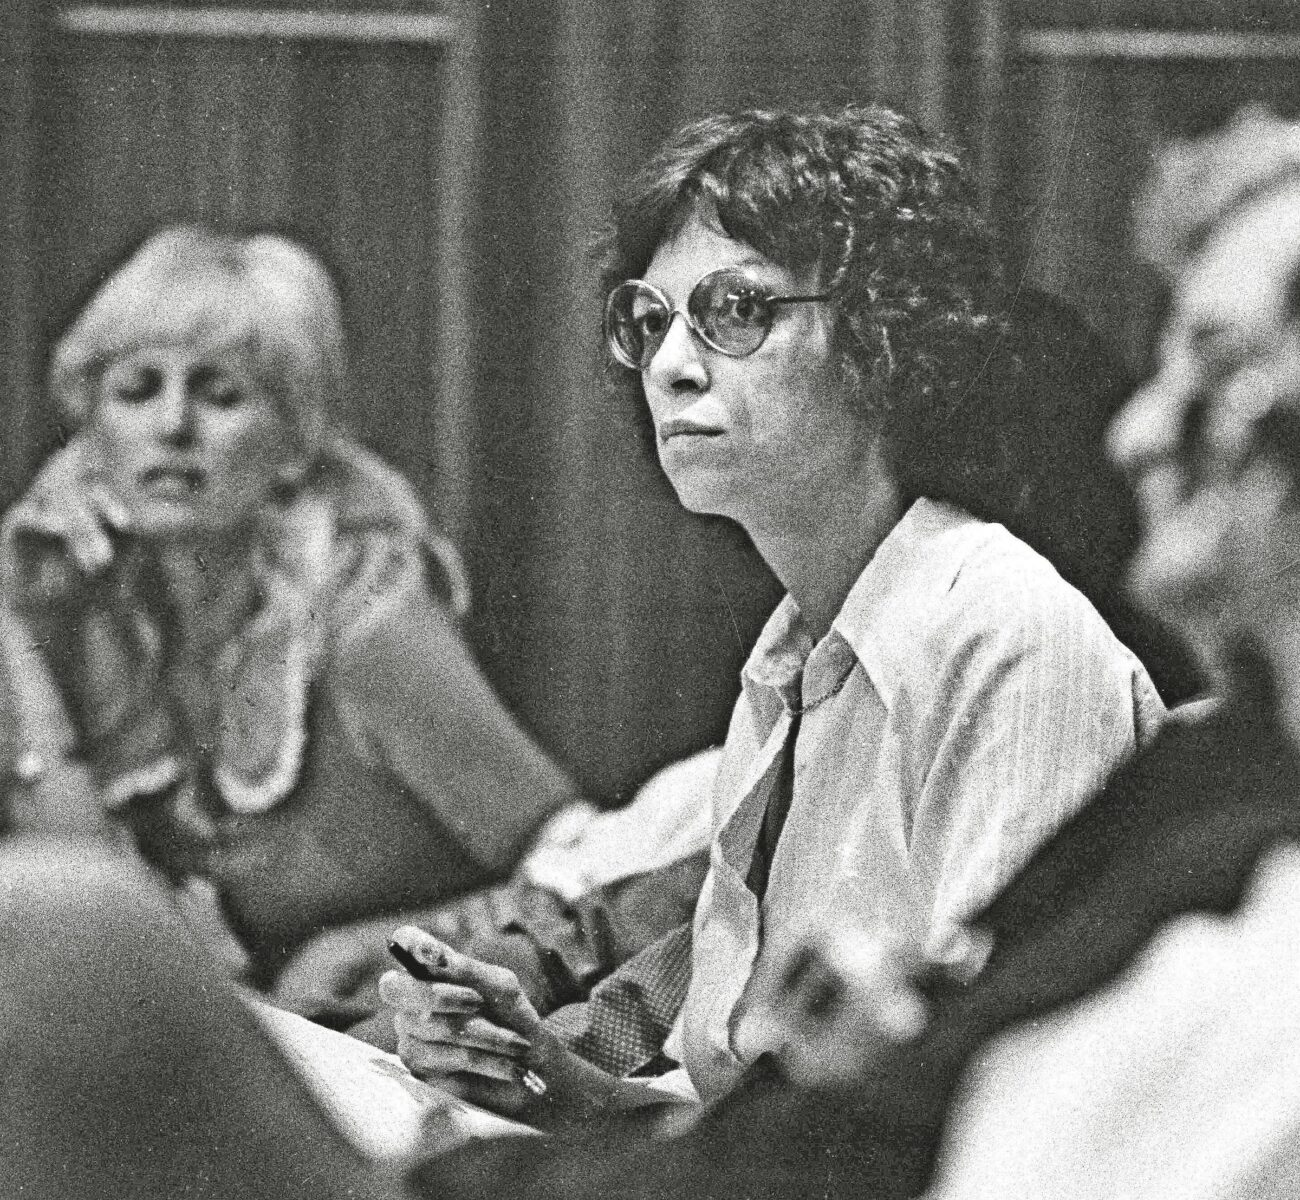 Carole Ann Boone was the wife of the infamous rapist & serial killer, Ted Bundy. Find out what she's been up to lately.